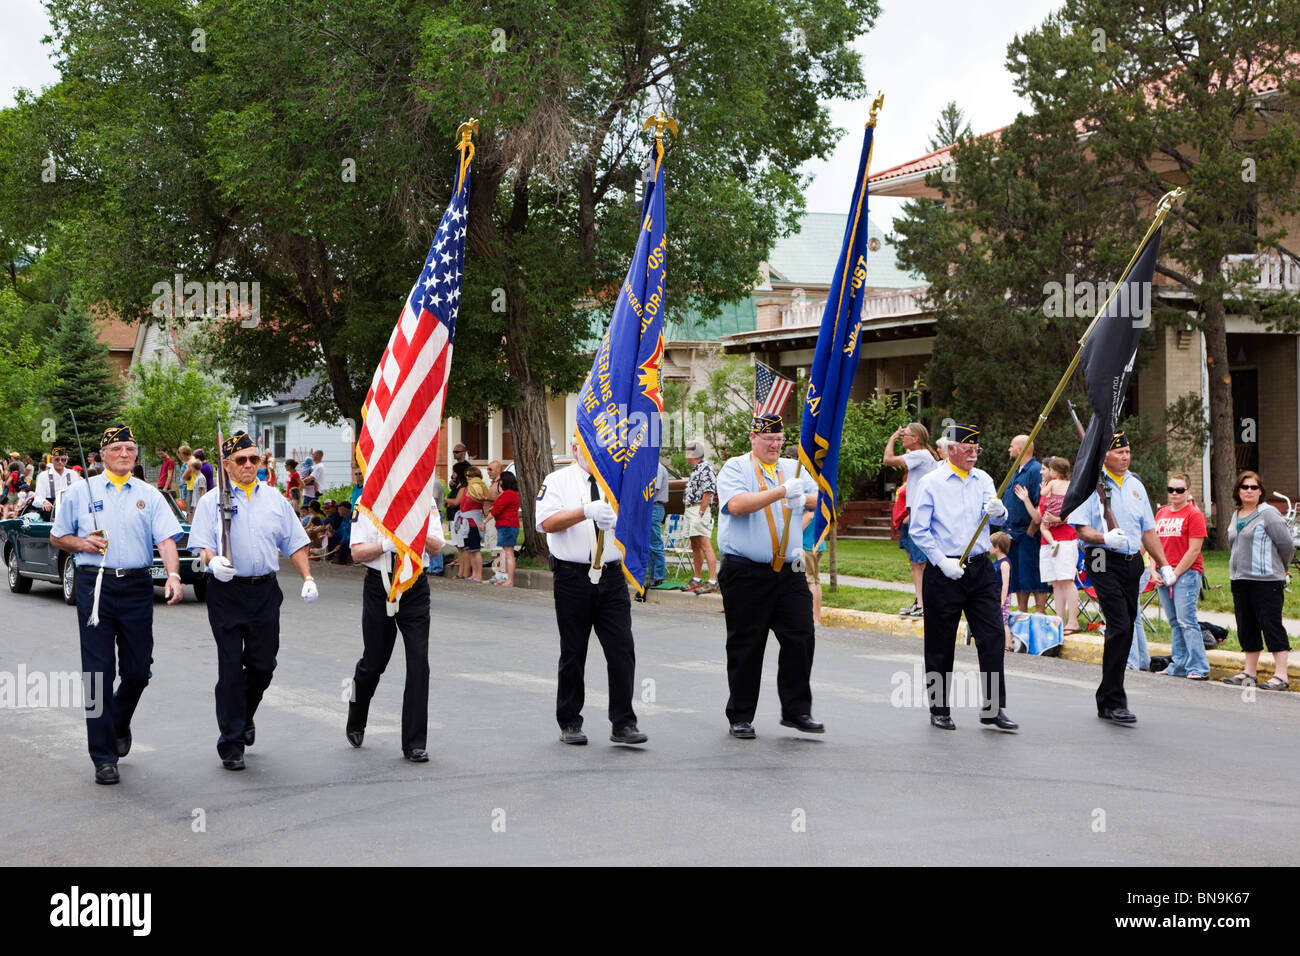 Veterans of Foreign Wars march in the color guard in a Fourth of July parade in the small mountain town of Salida, - Stock Image